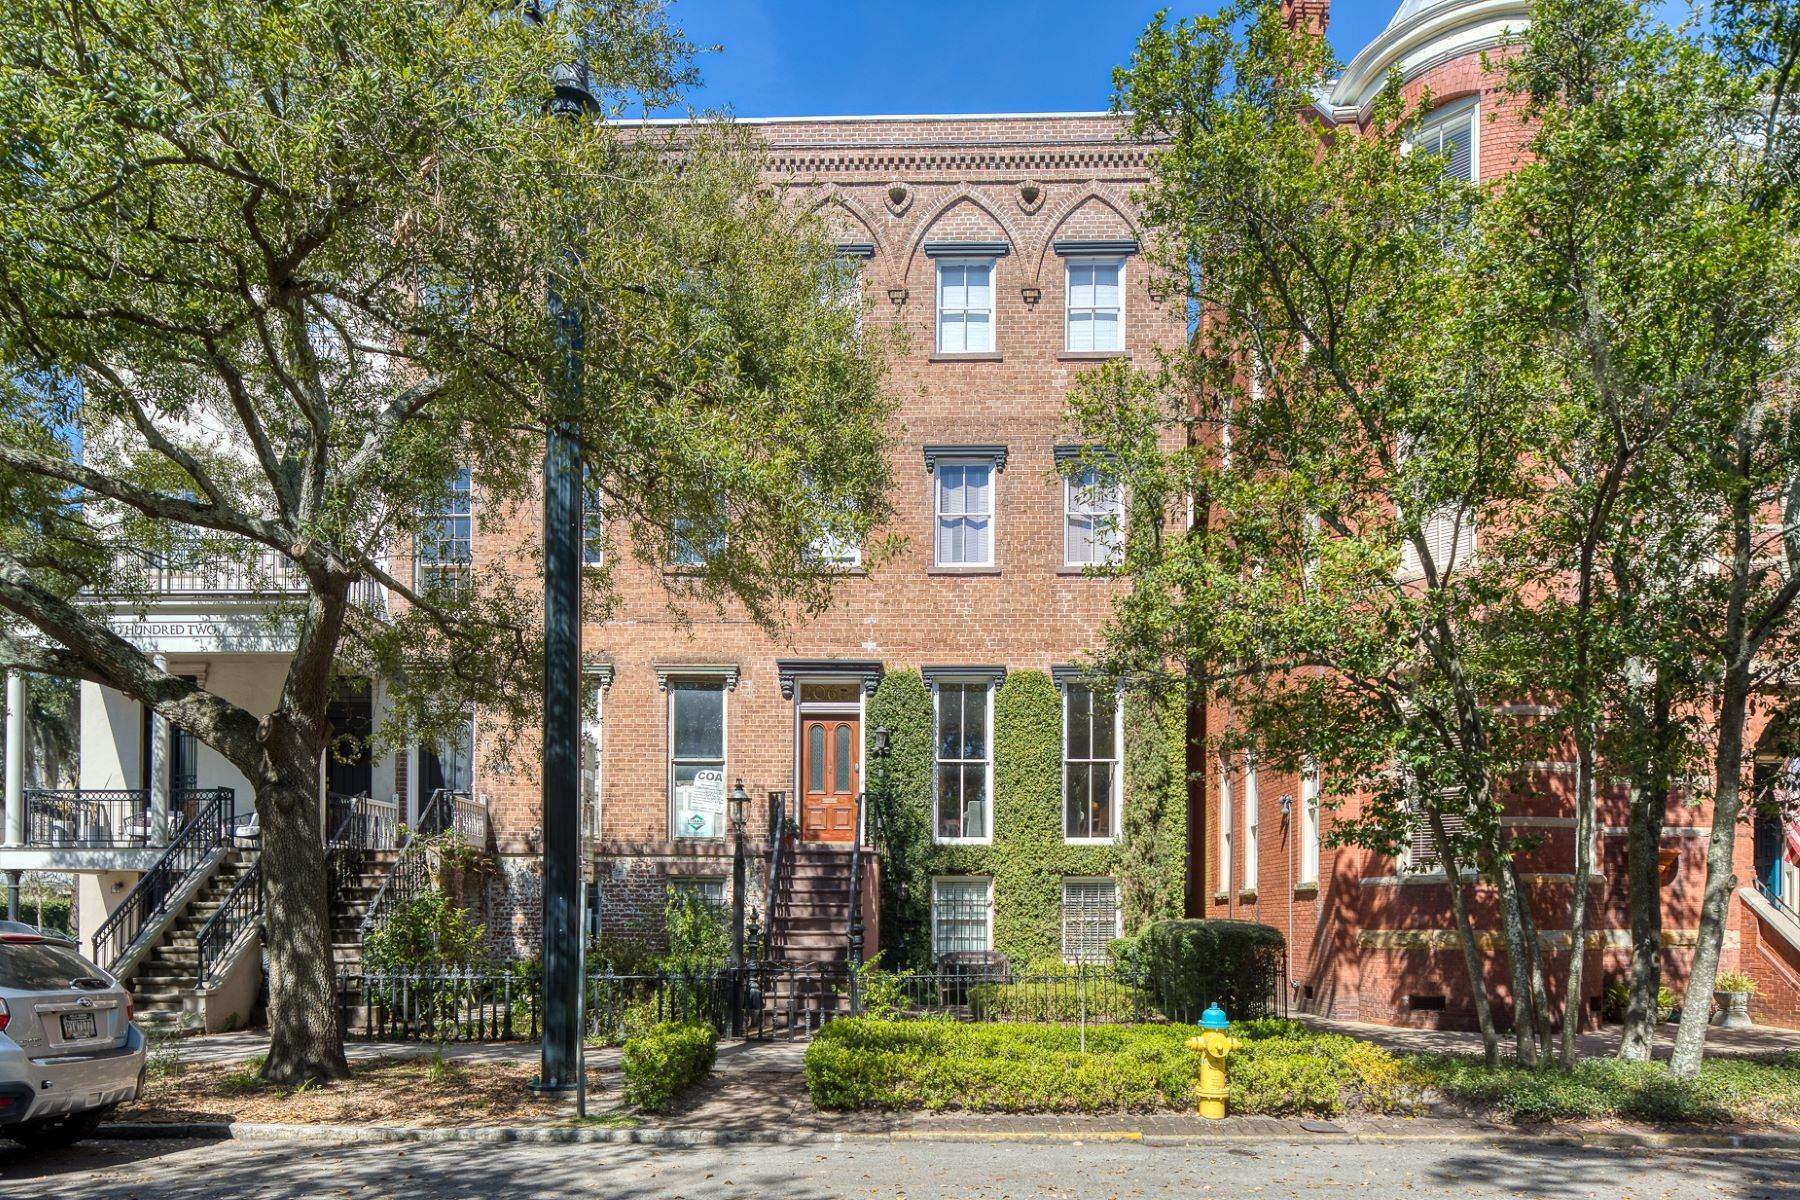 Single Family Homes for Sale at Architectural Gem Located In The Heart Of Savannah's Landmark Historic District 206 E Gaston Street Savannah, Georgia 31401 United States